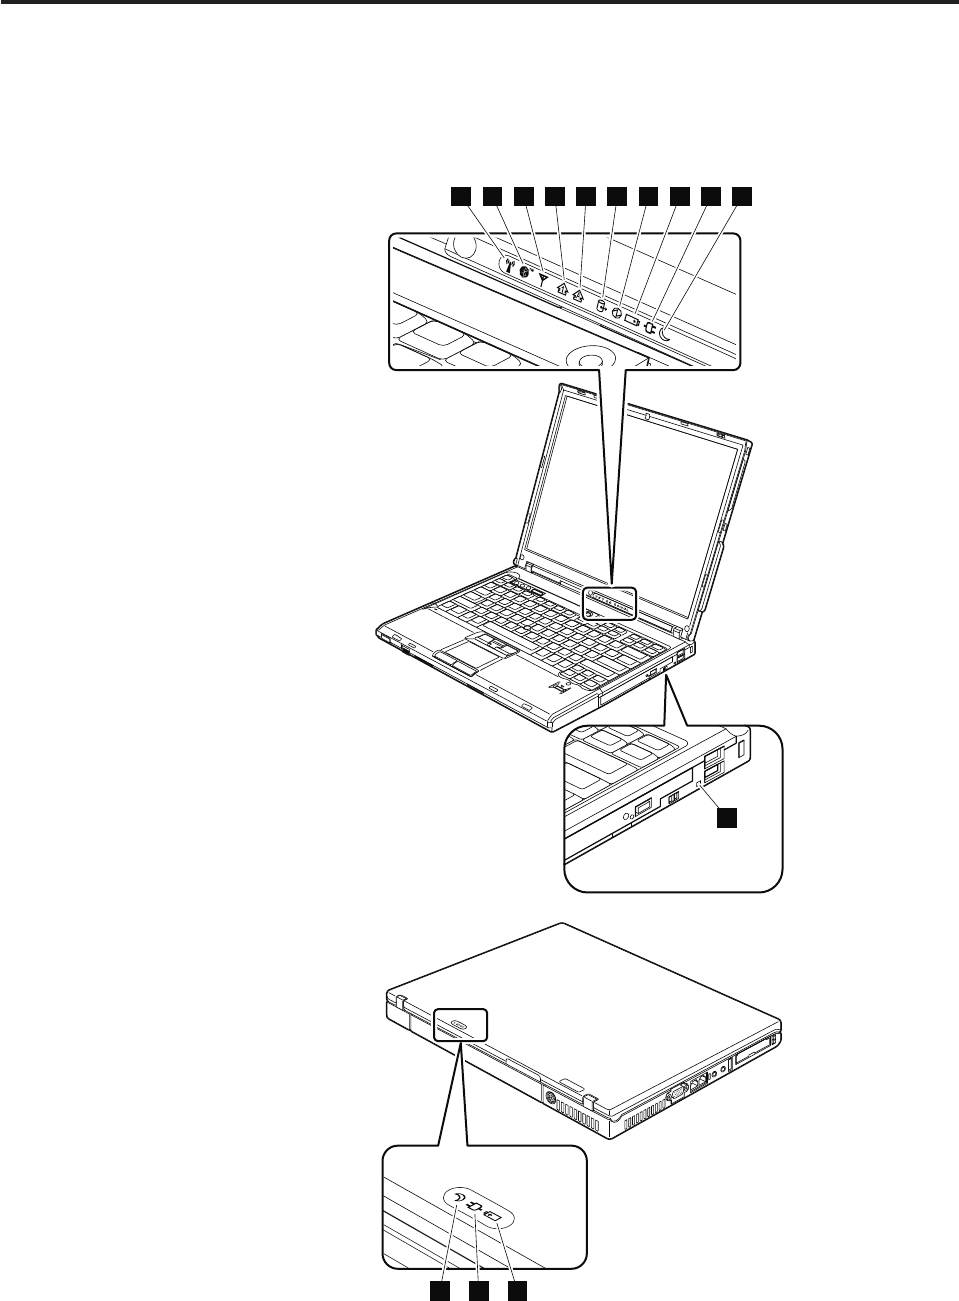 Lenovo Laptop R400 Users Manual ThinkPad T400 And Hardware